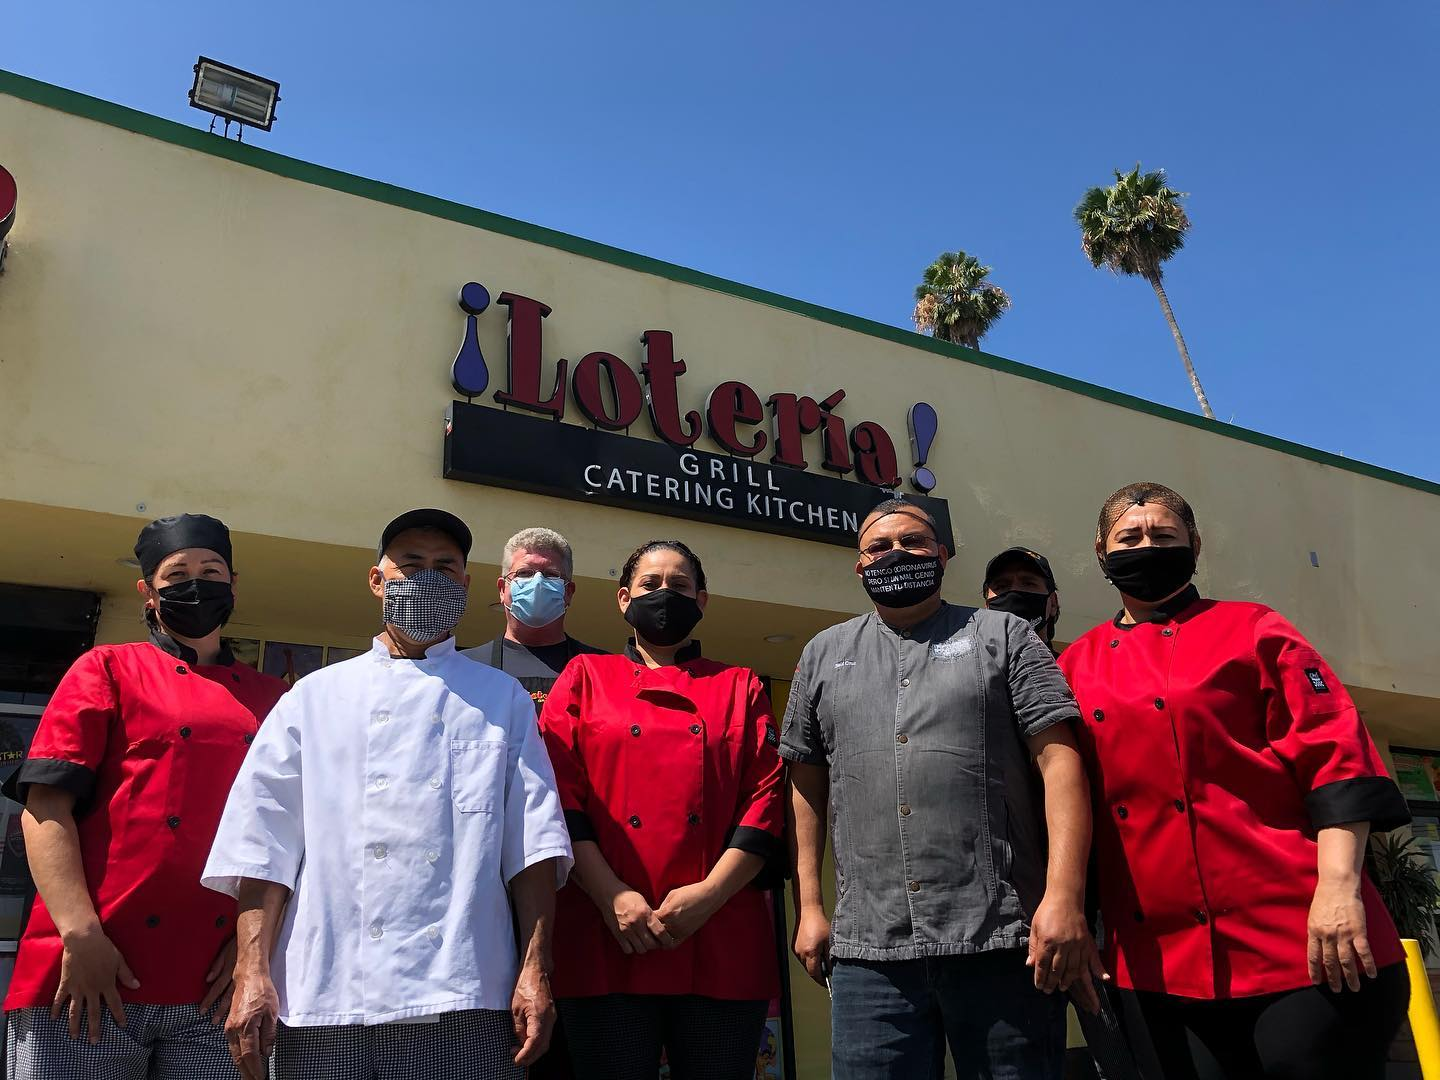 A group of workers in colorful kitchen outfits in front of a strip mall restaurant.